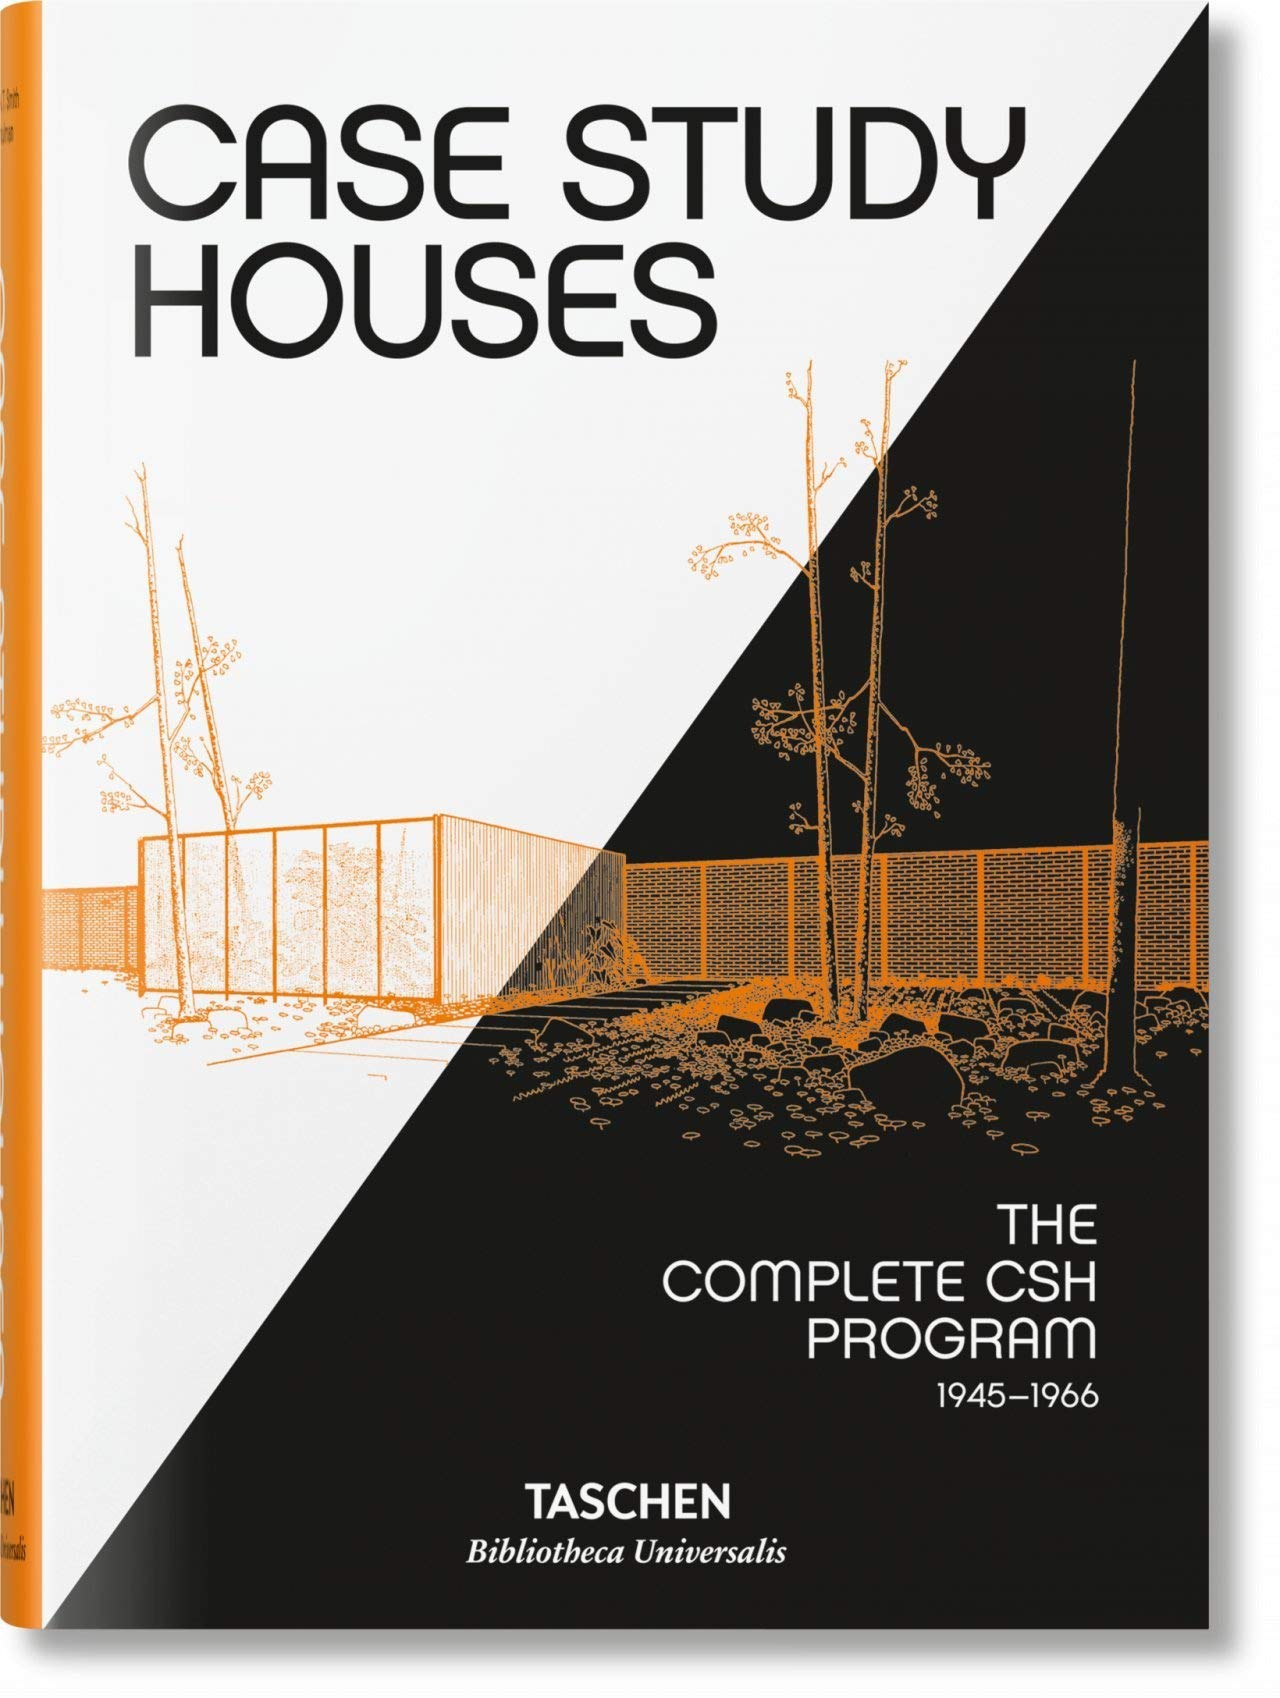 Case Study Houses : The Complete CSH Program, 1945-1966